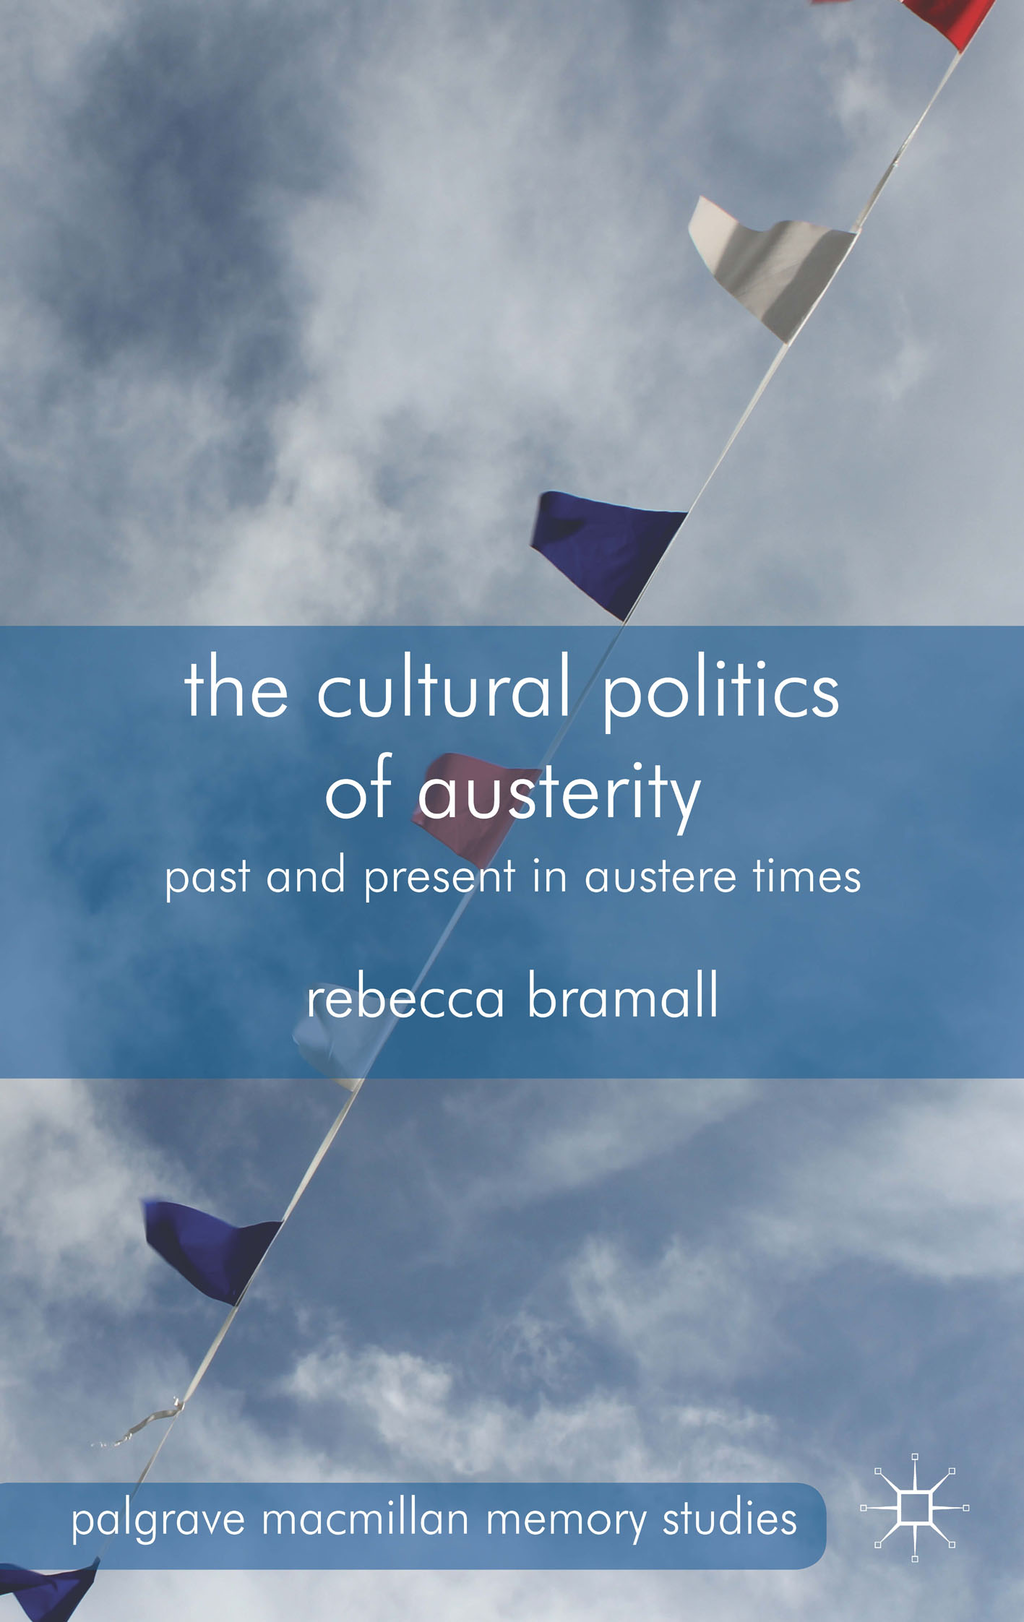 The Cultural Politics of Austerity Past and Present in Austere Times